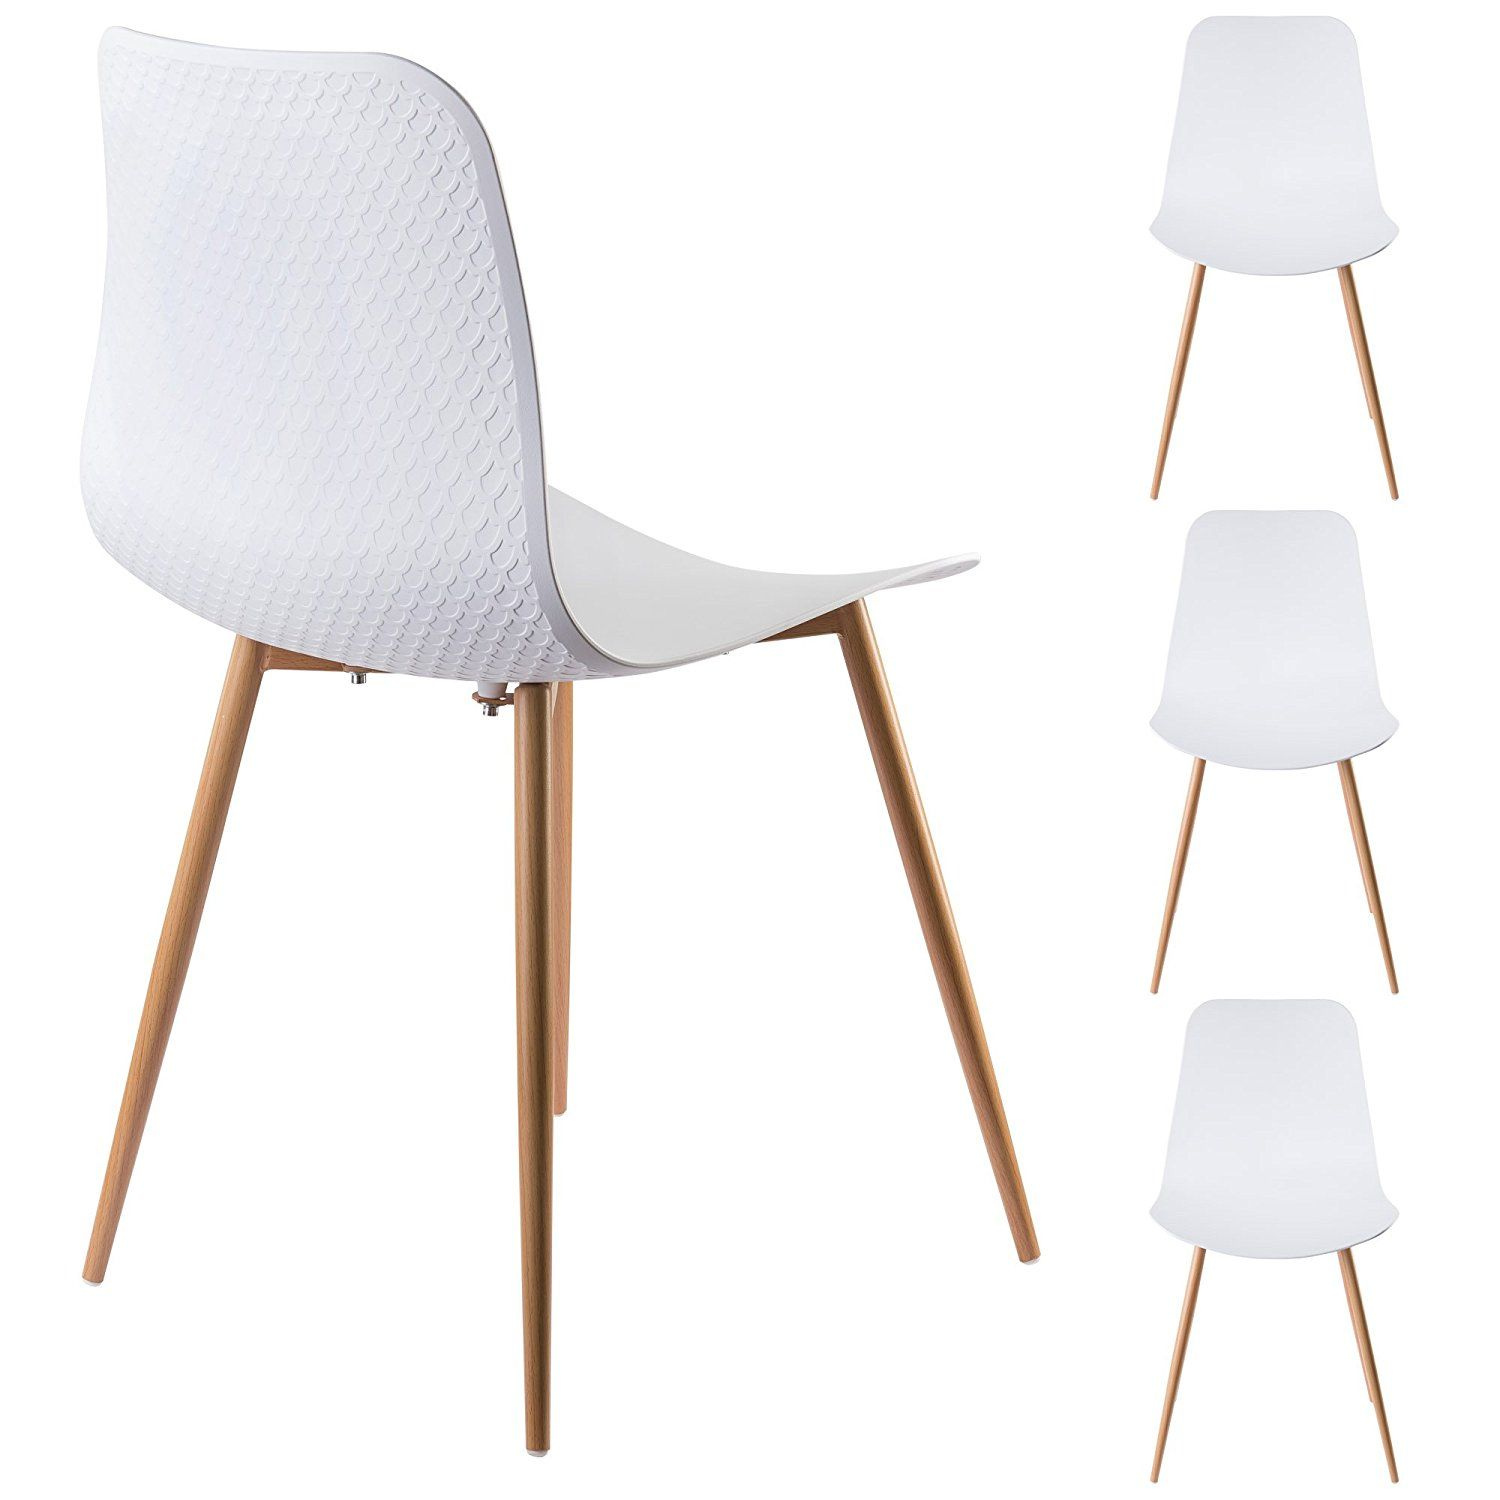 Excellent Viola Set Of 4 White Dining Chairs Mid Century Modern Creativecarmelina Interior Chair Design Creativecarmelinacom